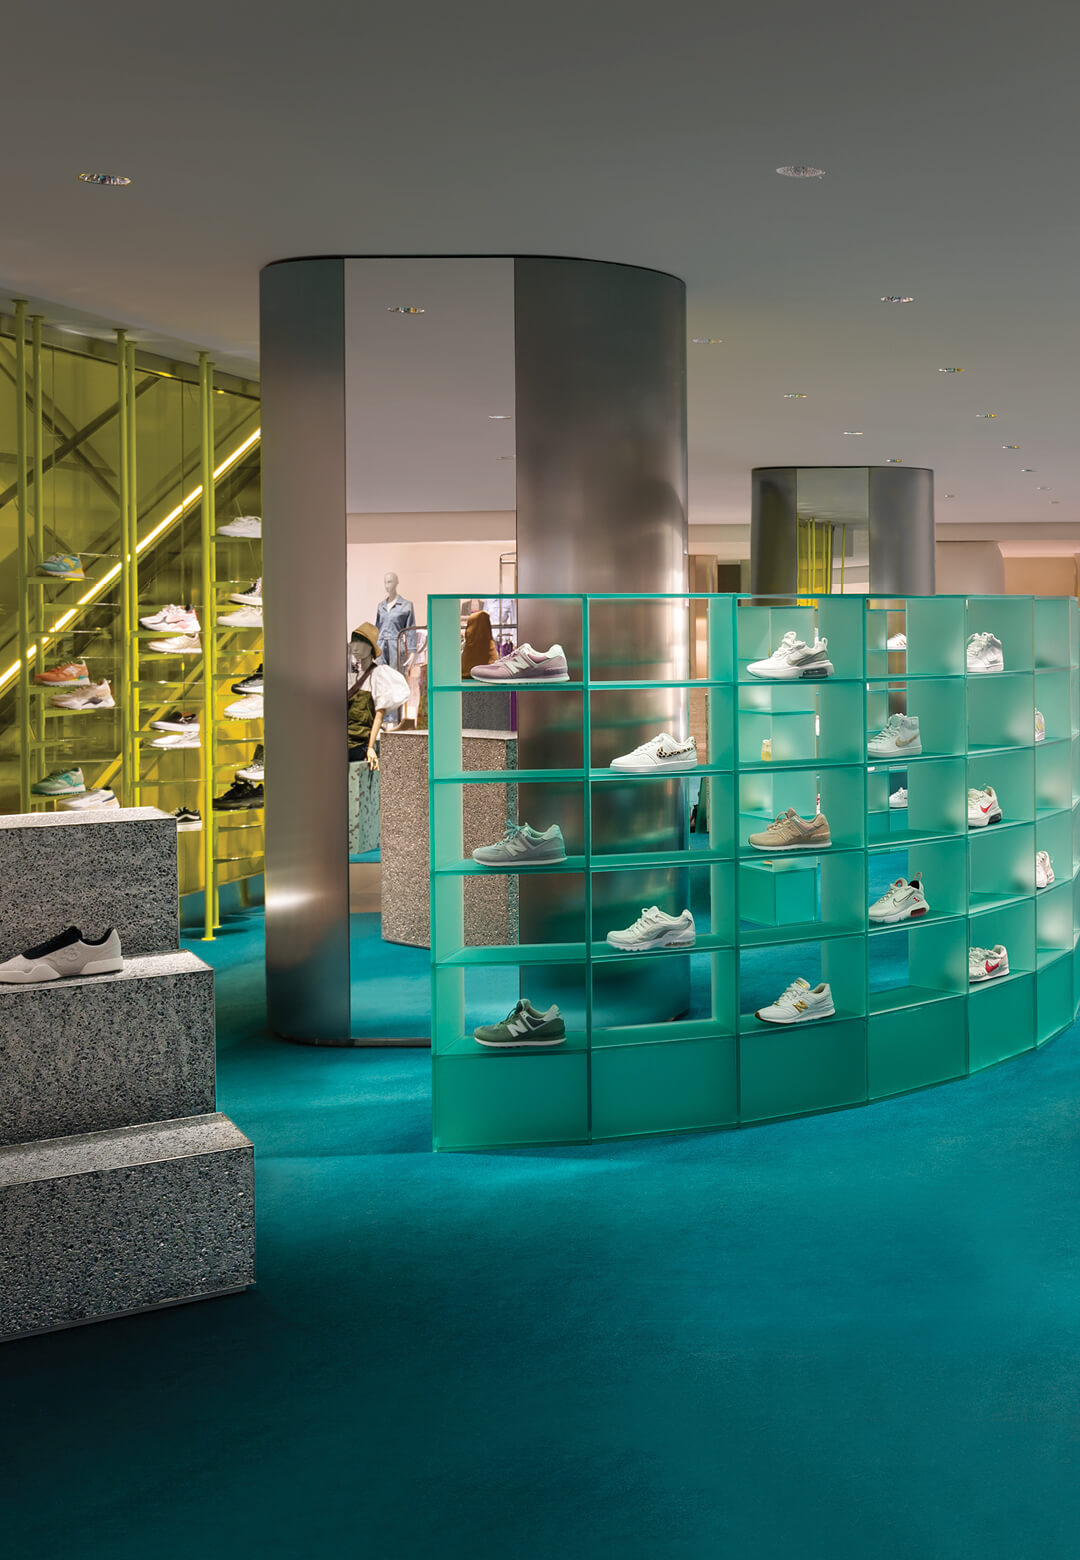 Studiopepe revamps the fourth floor of Rinascente in Milan, transforming the flagship retail space with pop tones and graphic elements   Rinascente by Studiopepe   STIRworld